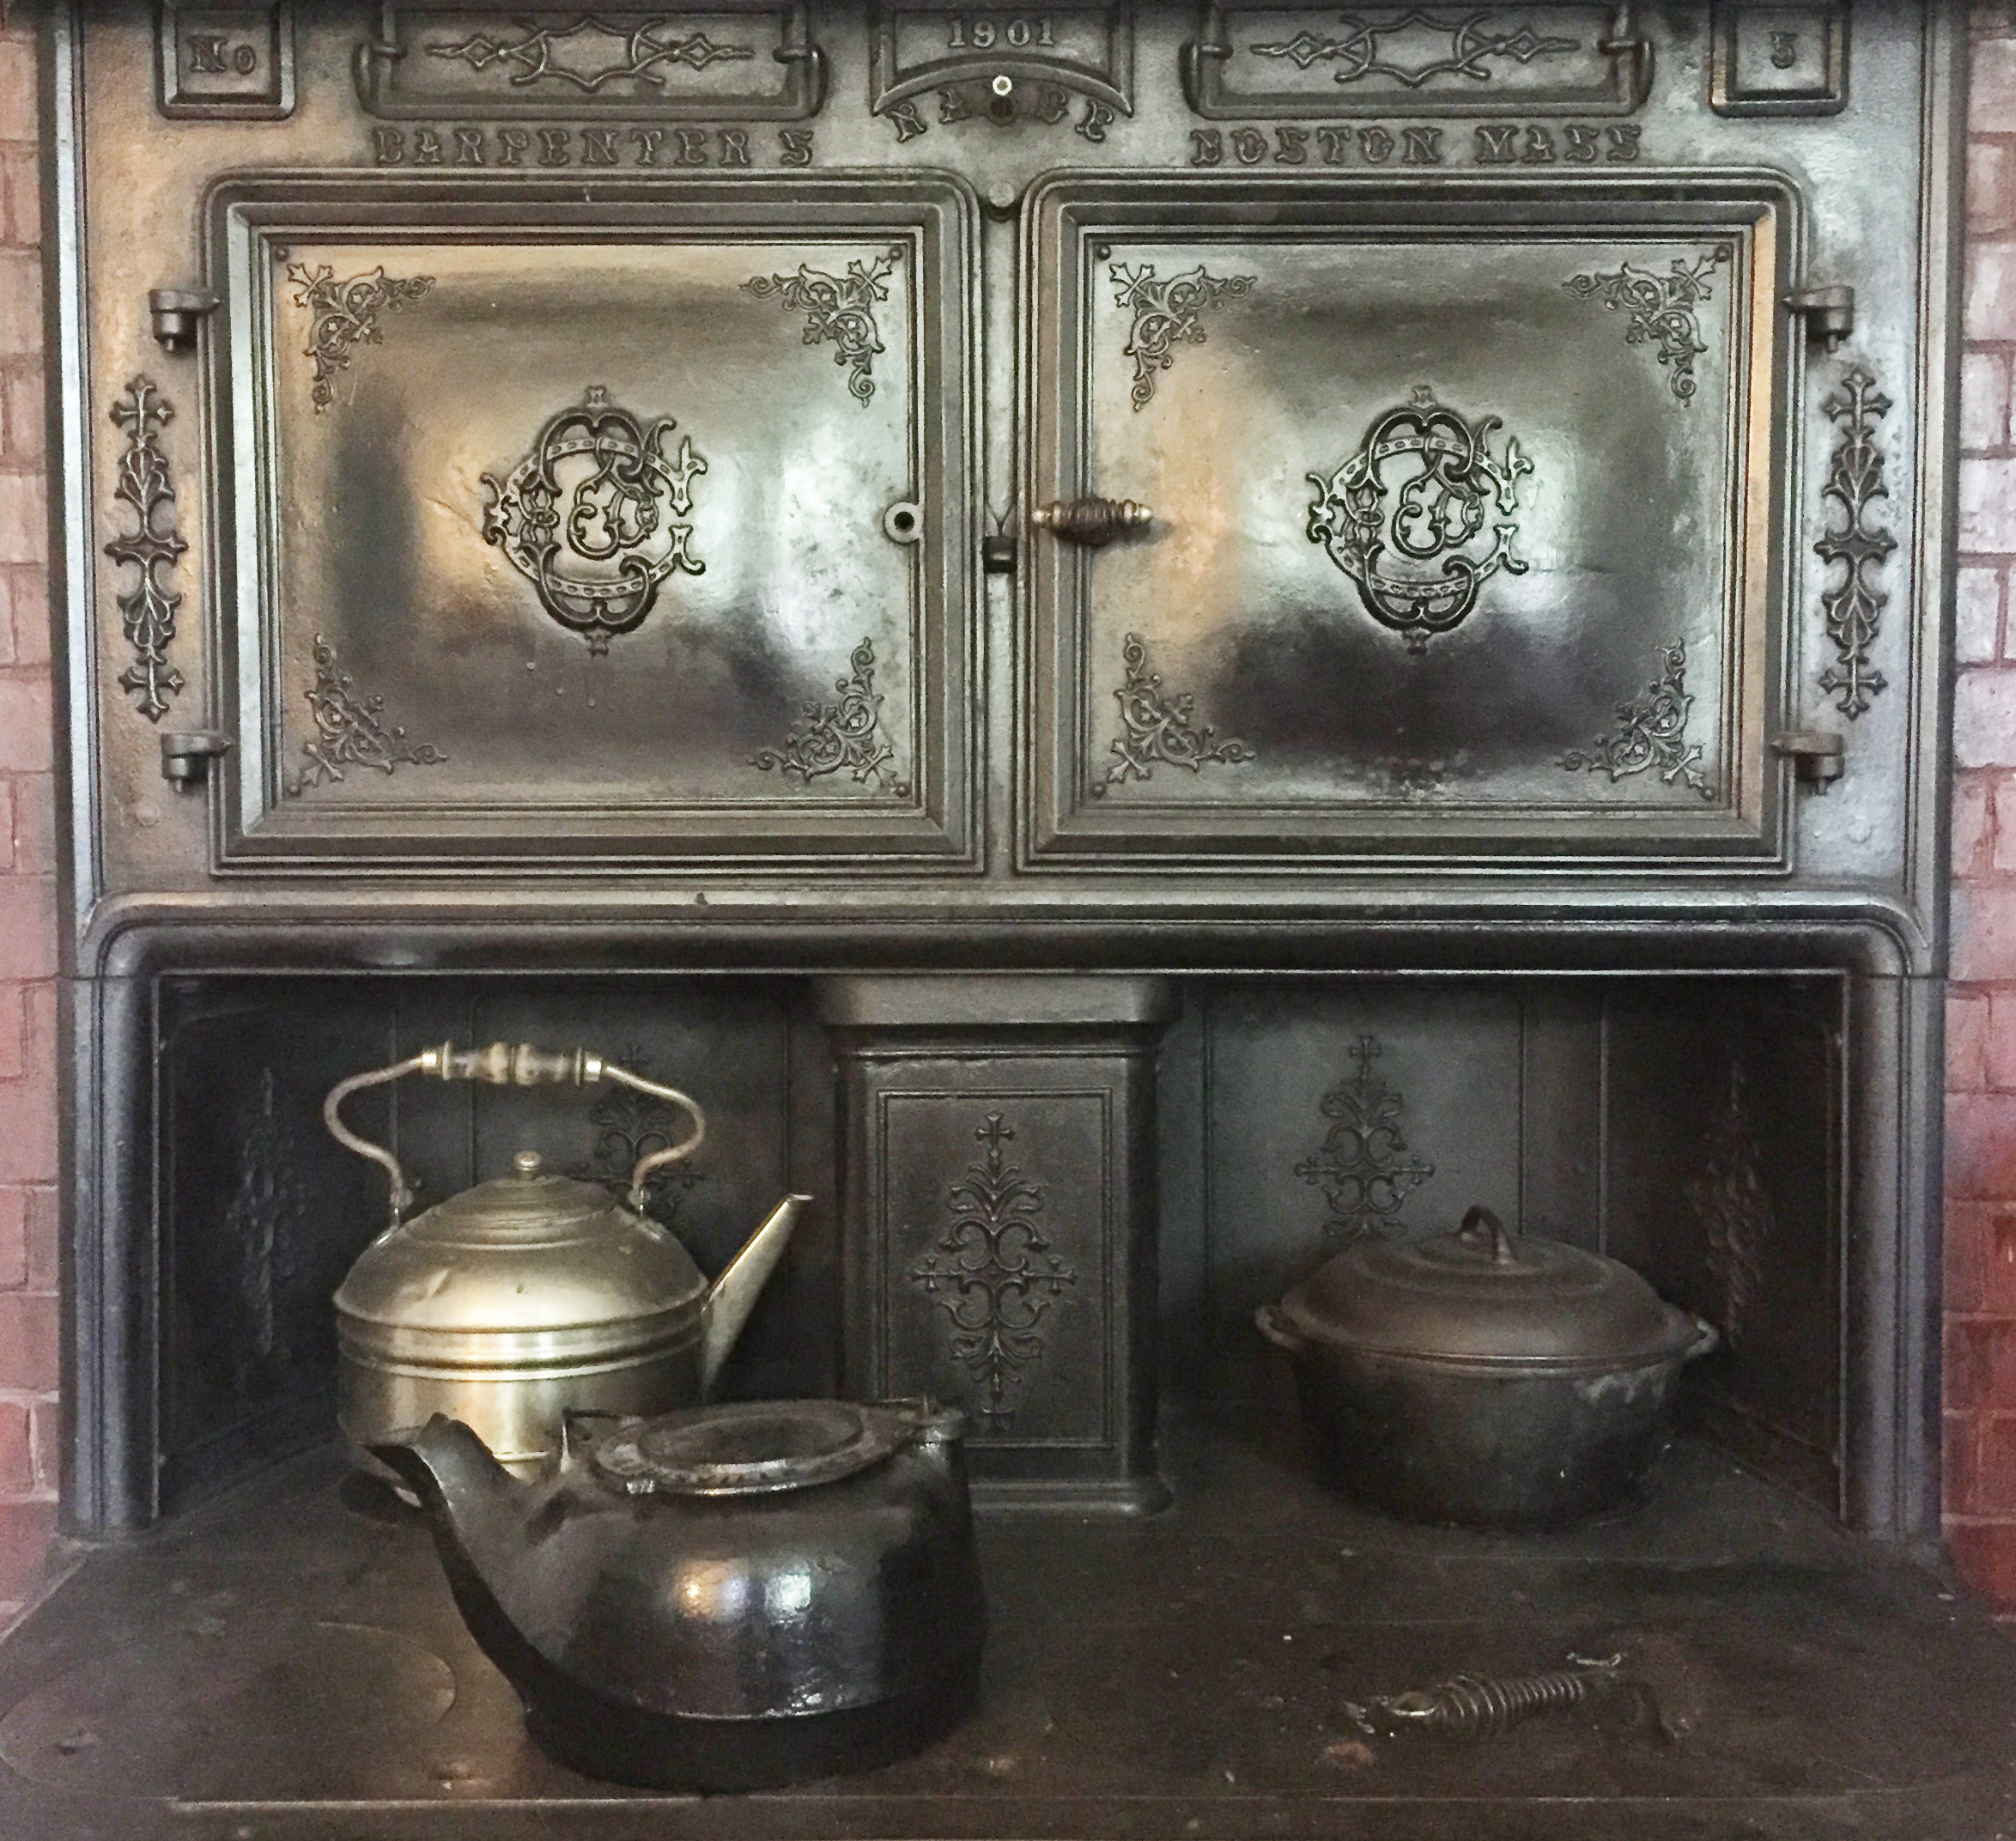 Exploring the LGH Kitchen – Our Coal-Burning Stove